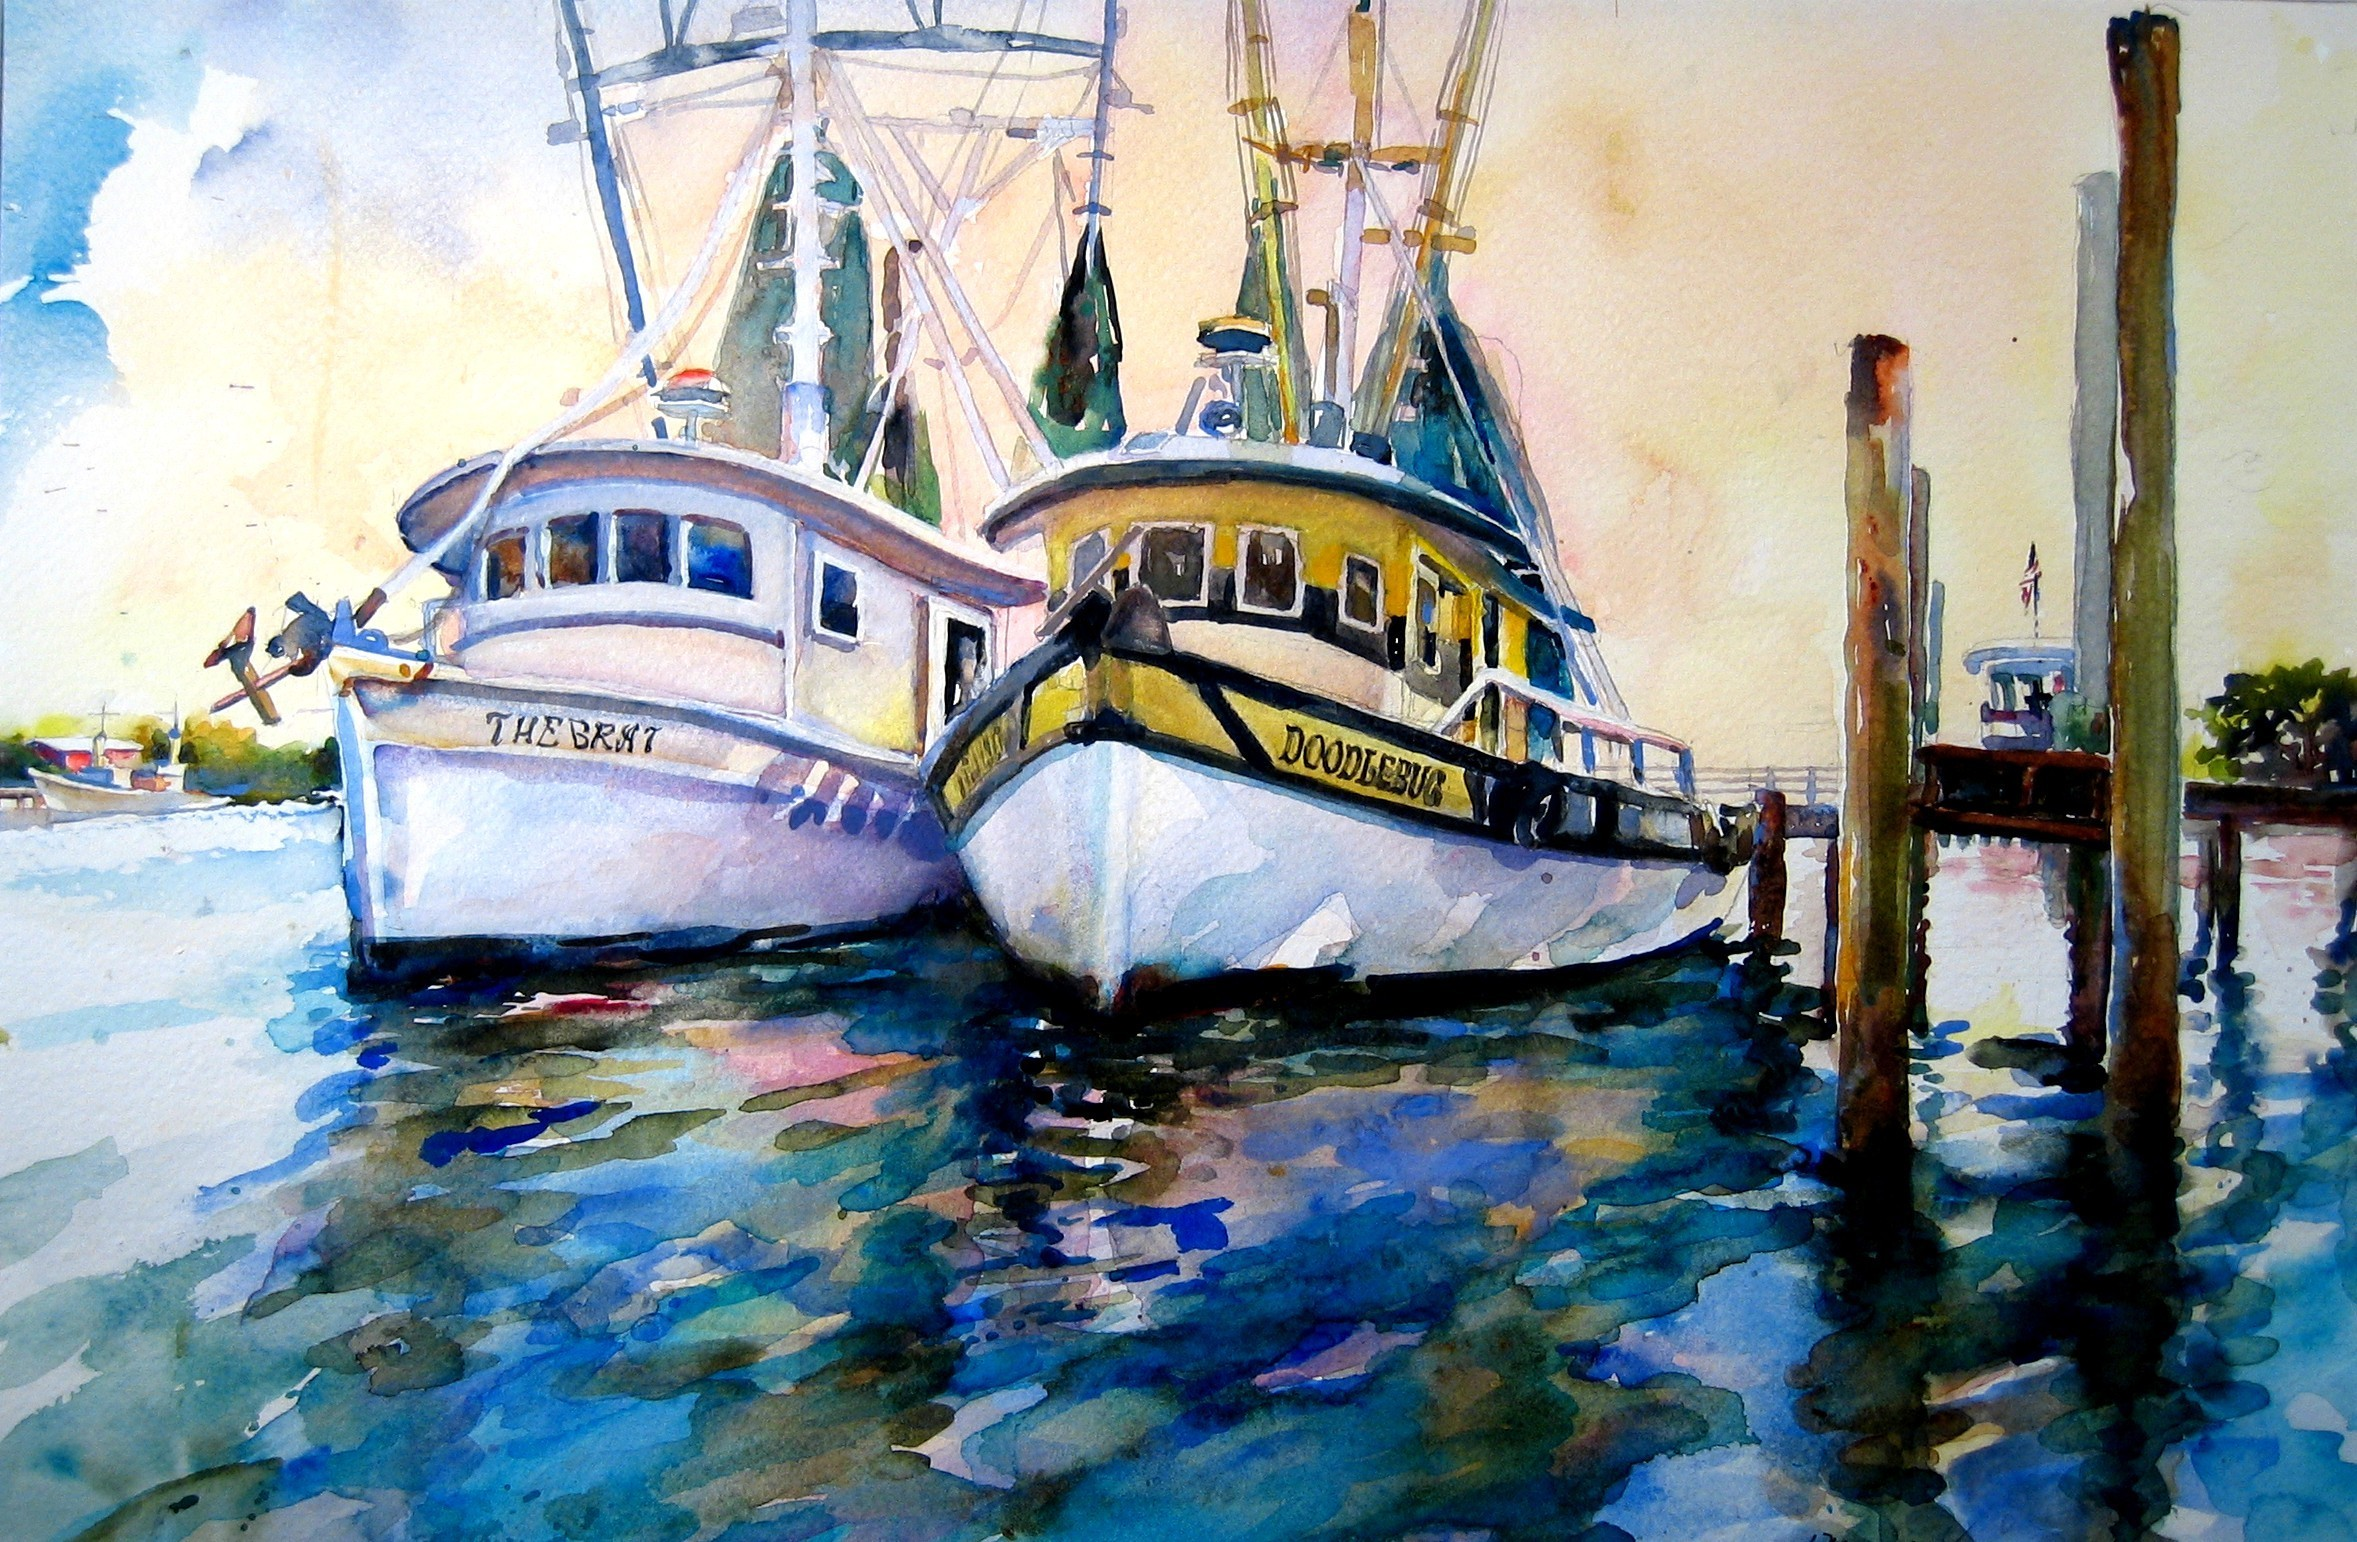 """Shrimp Boats Side by Side"" is among the pieces by Lois Newman on display through July at Adele Grage Cultural Center in Atlantic Beach. A reception for Newman's exhibit is held July 18 during North Beaches Art Walk."